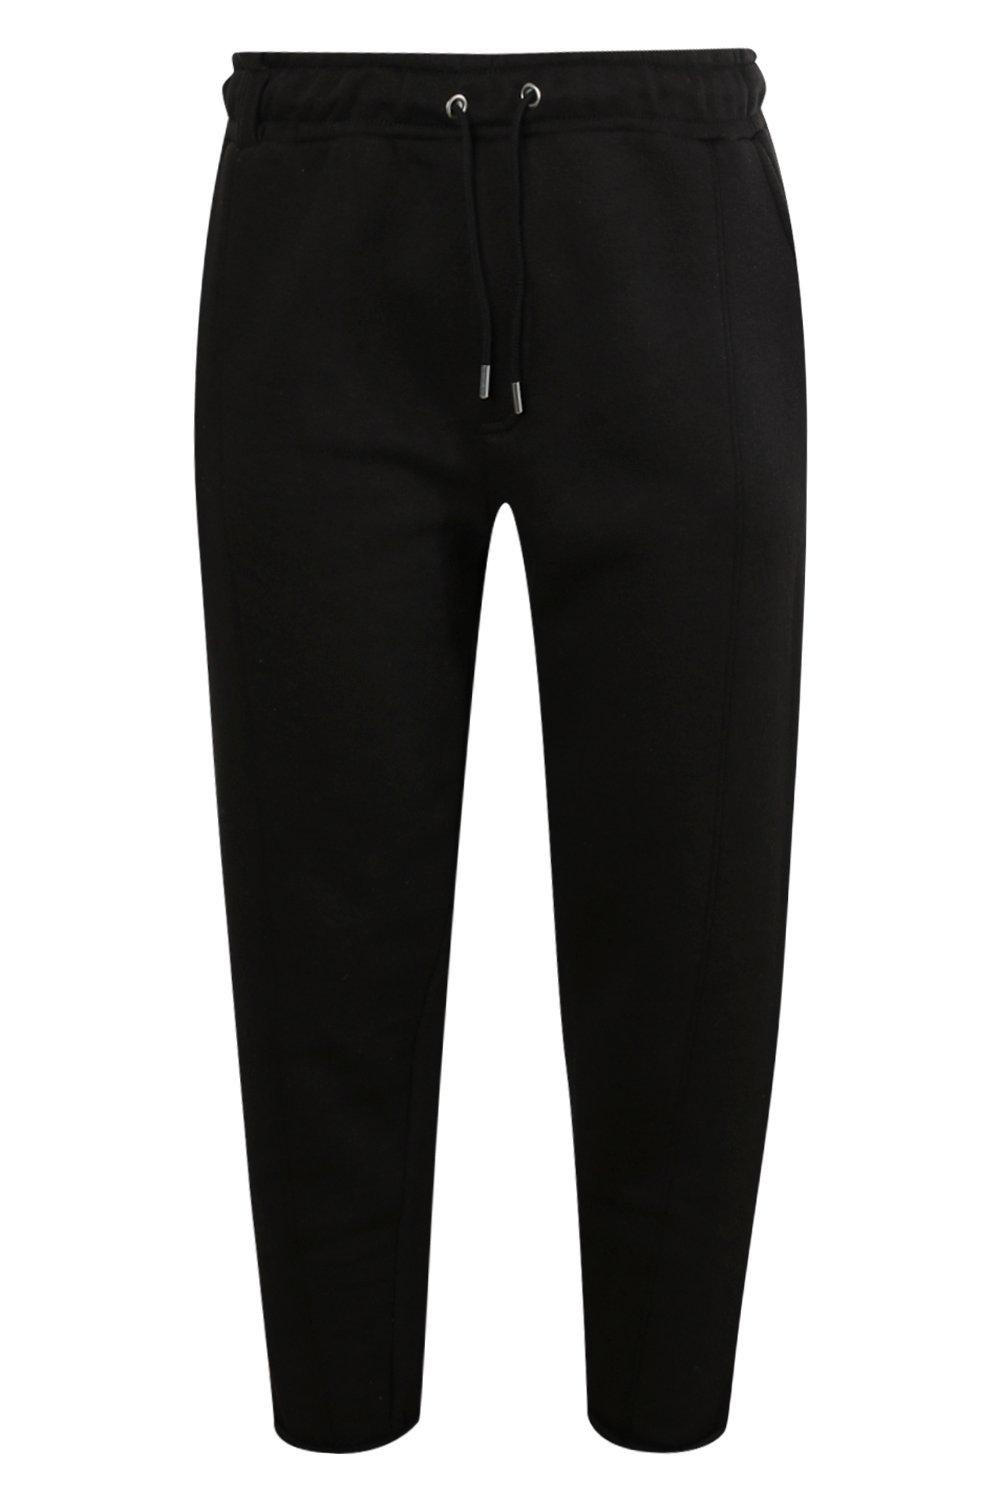 boohooMAN black Cropped Slim Jogger With Turn Ups And Tab Detail